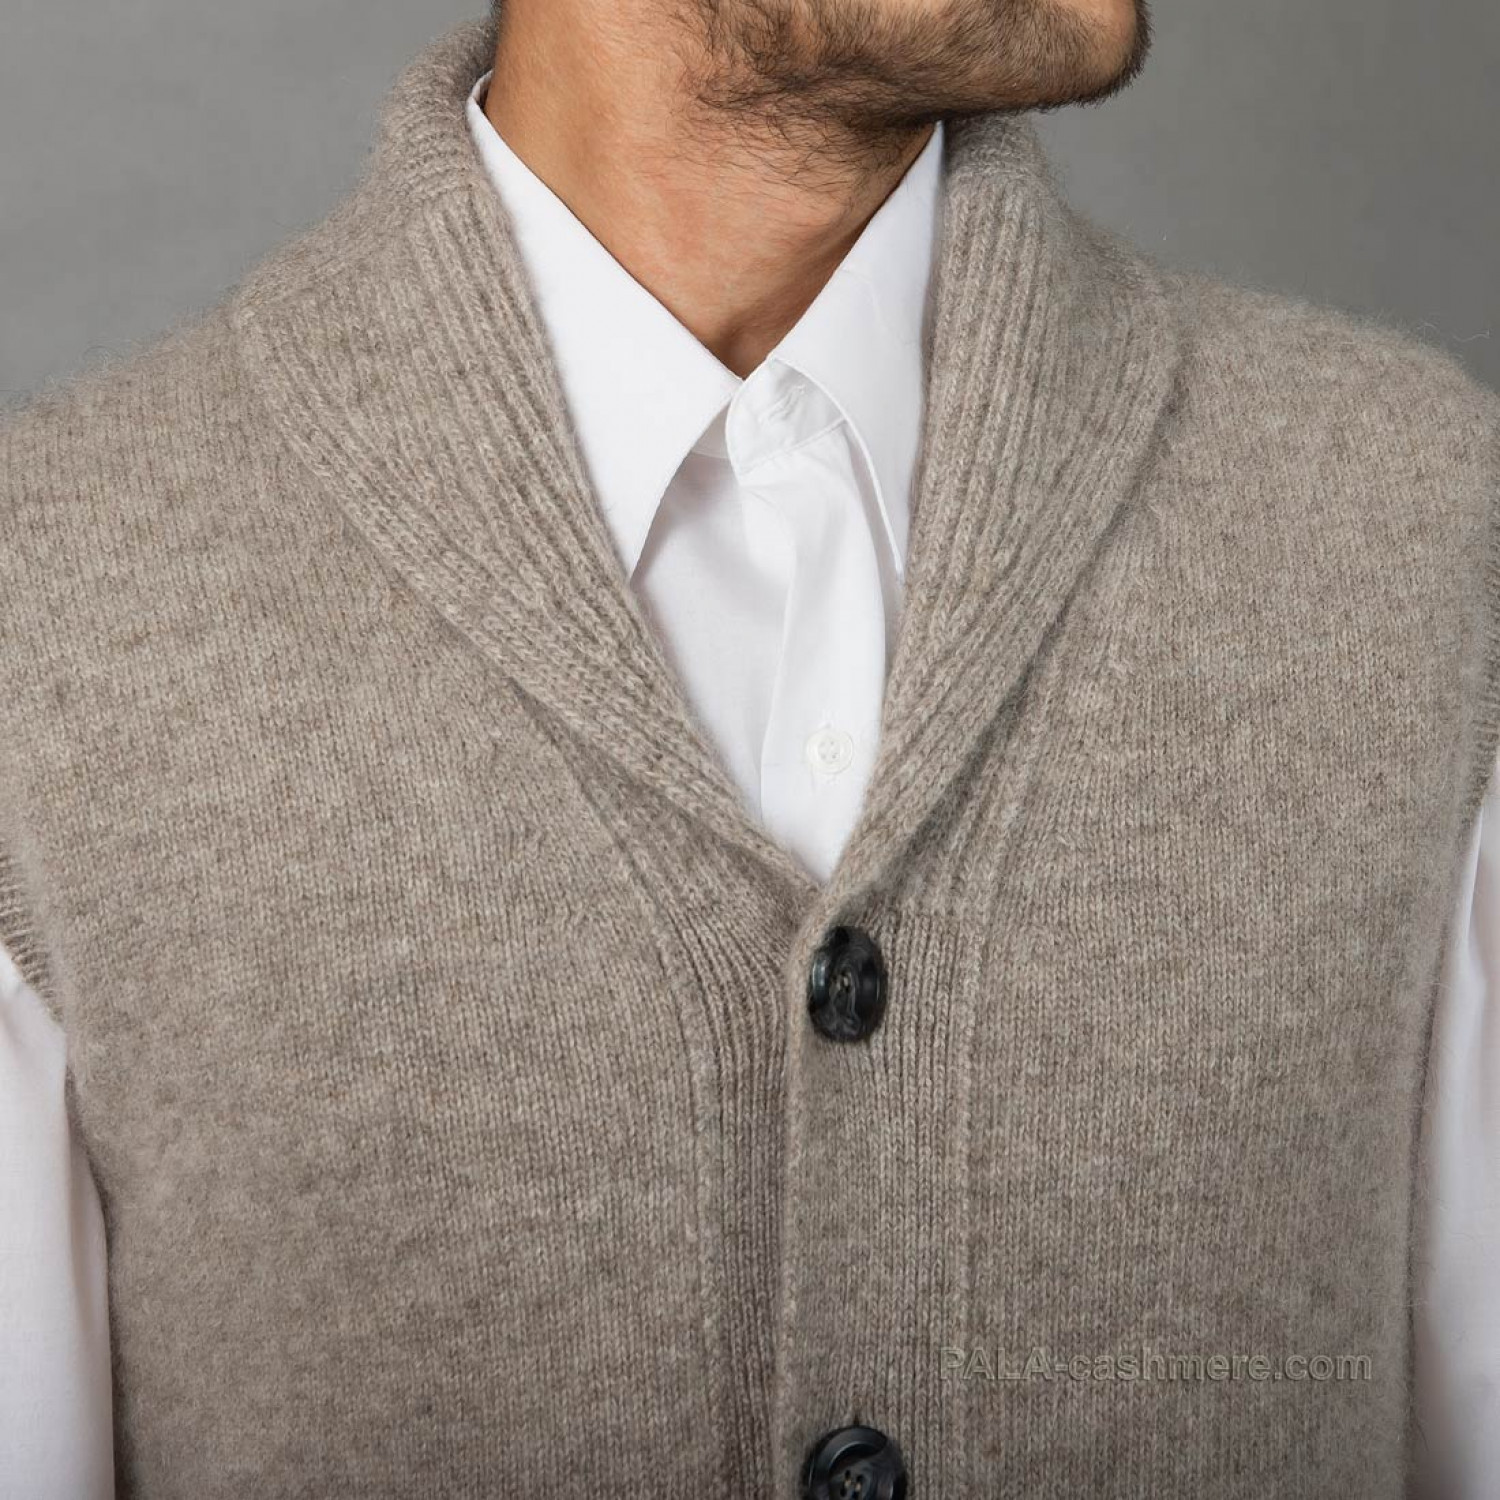 A man's vest with a collar and buttons